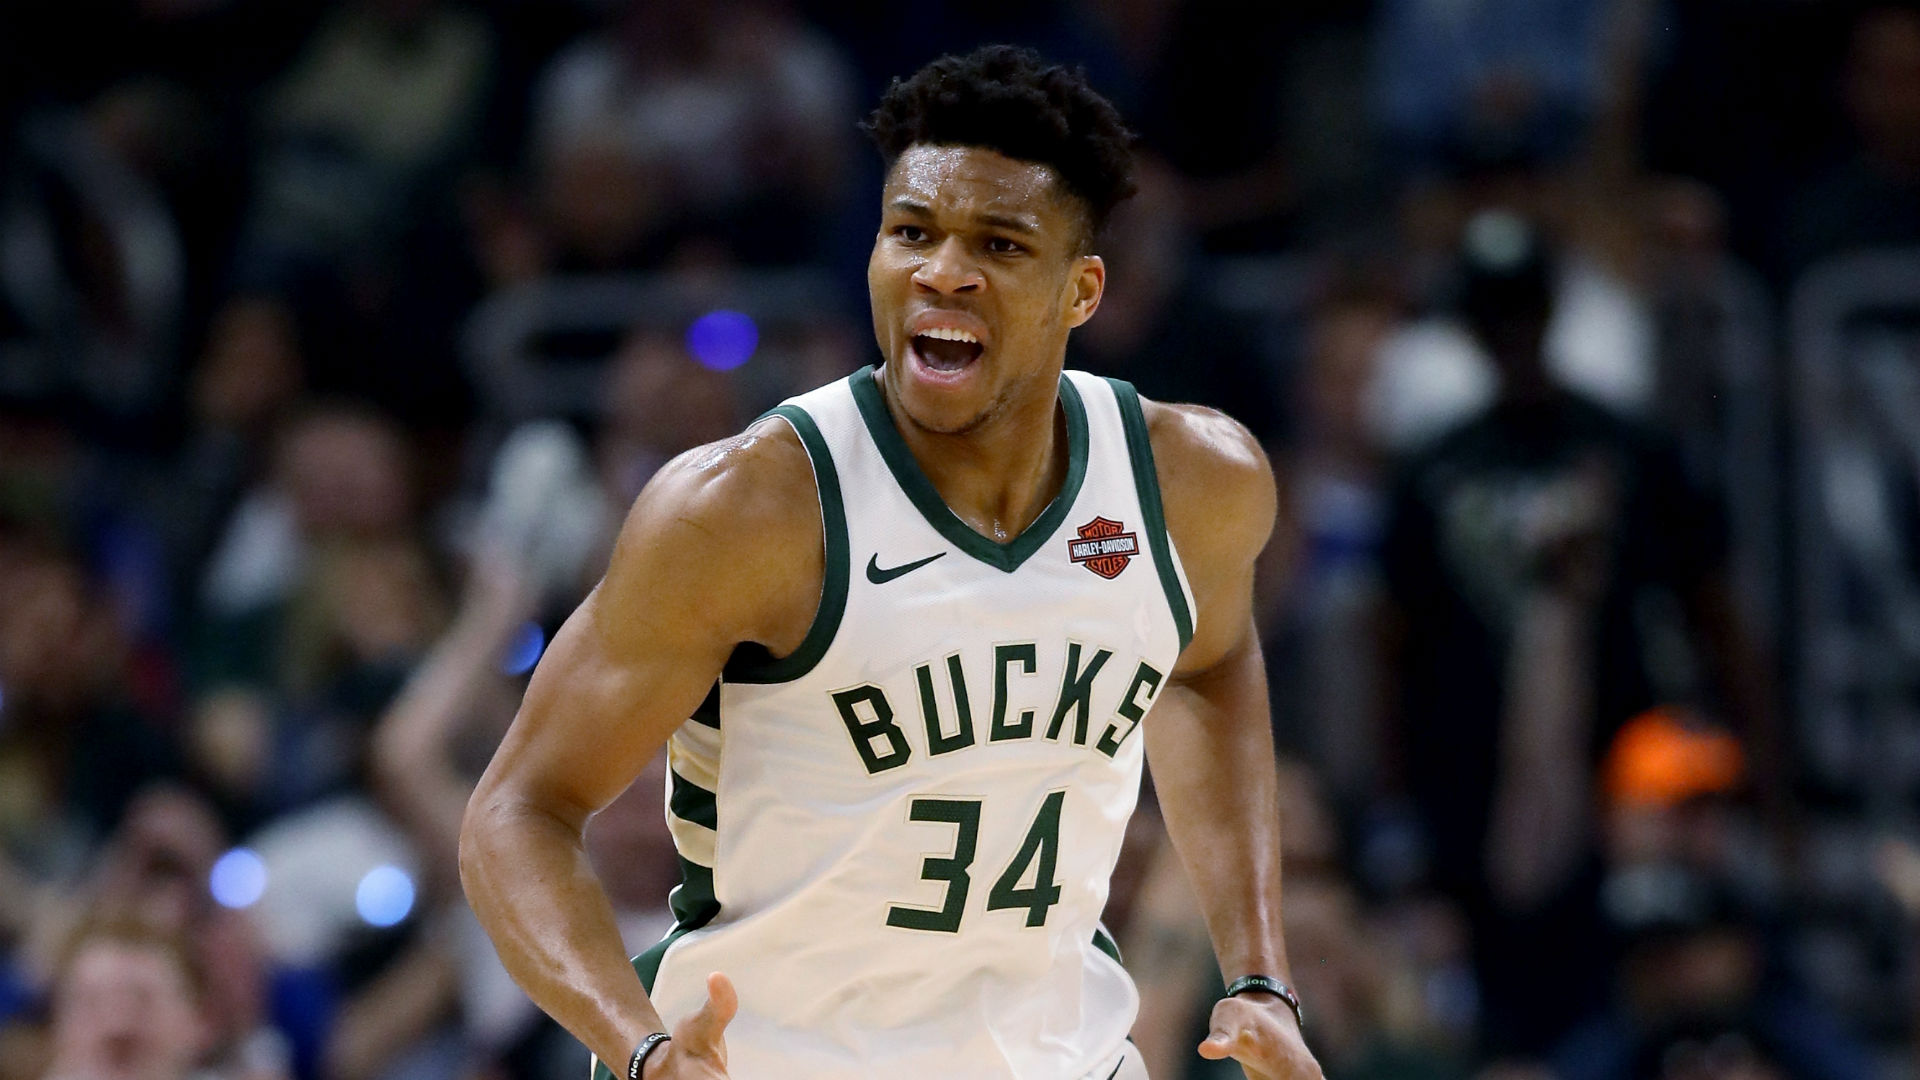 Giannis Antetokounmpo has insisted the Milwaukee Bucks will bounce back from Thursday's defeat to the Toronto Raptors in the NBA playoffs.